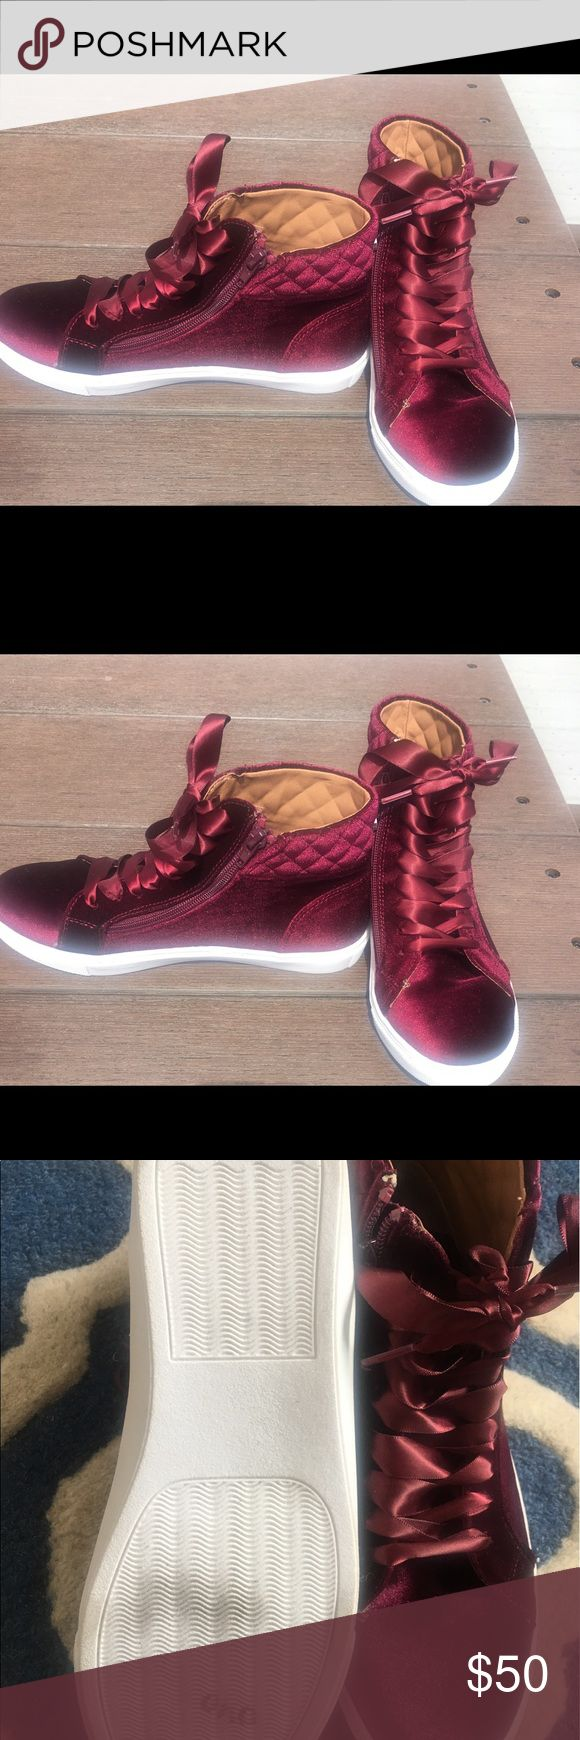 STEVE MADDEN ENDIRA VELVET HIGH TOP SNEAKERS Brand new. Maroon color. Few minor scuffs in soles from the store Steve Madden Shoes Sneakers